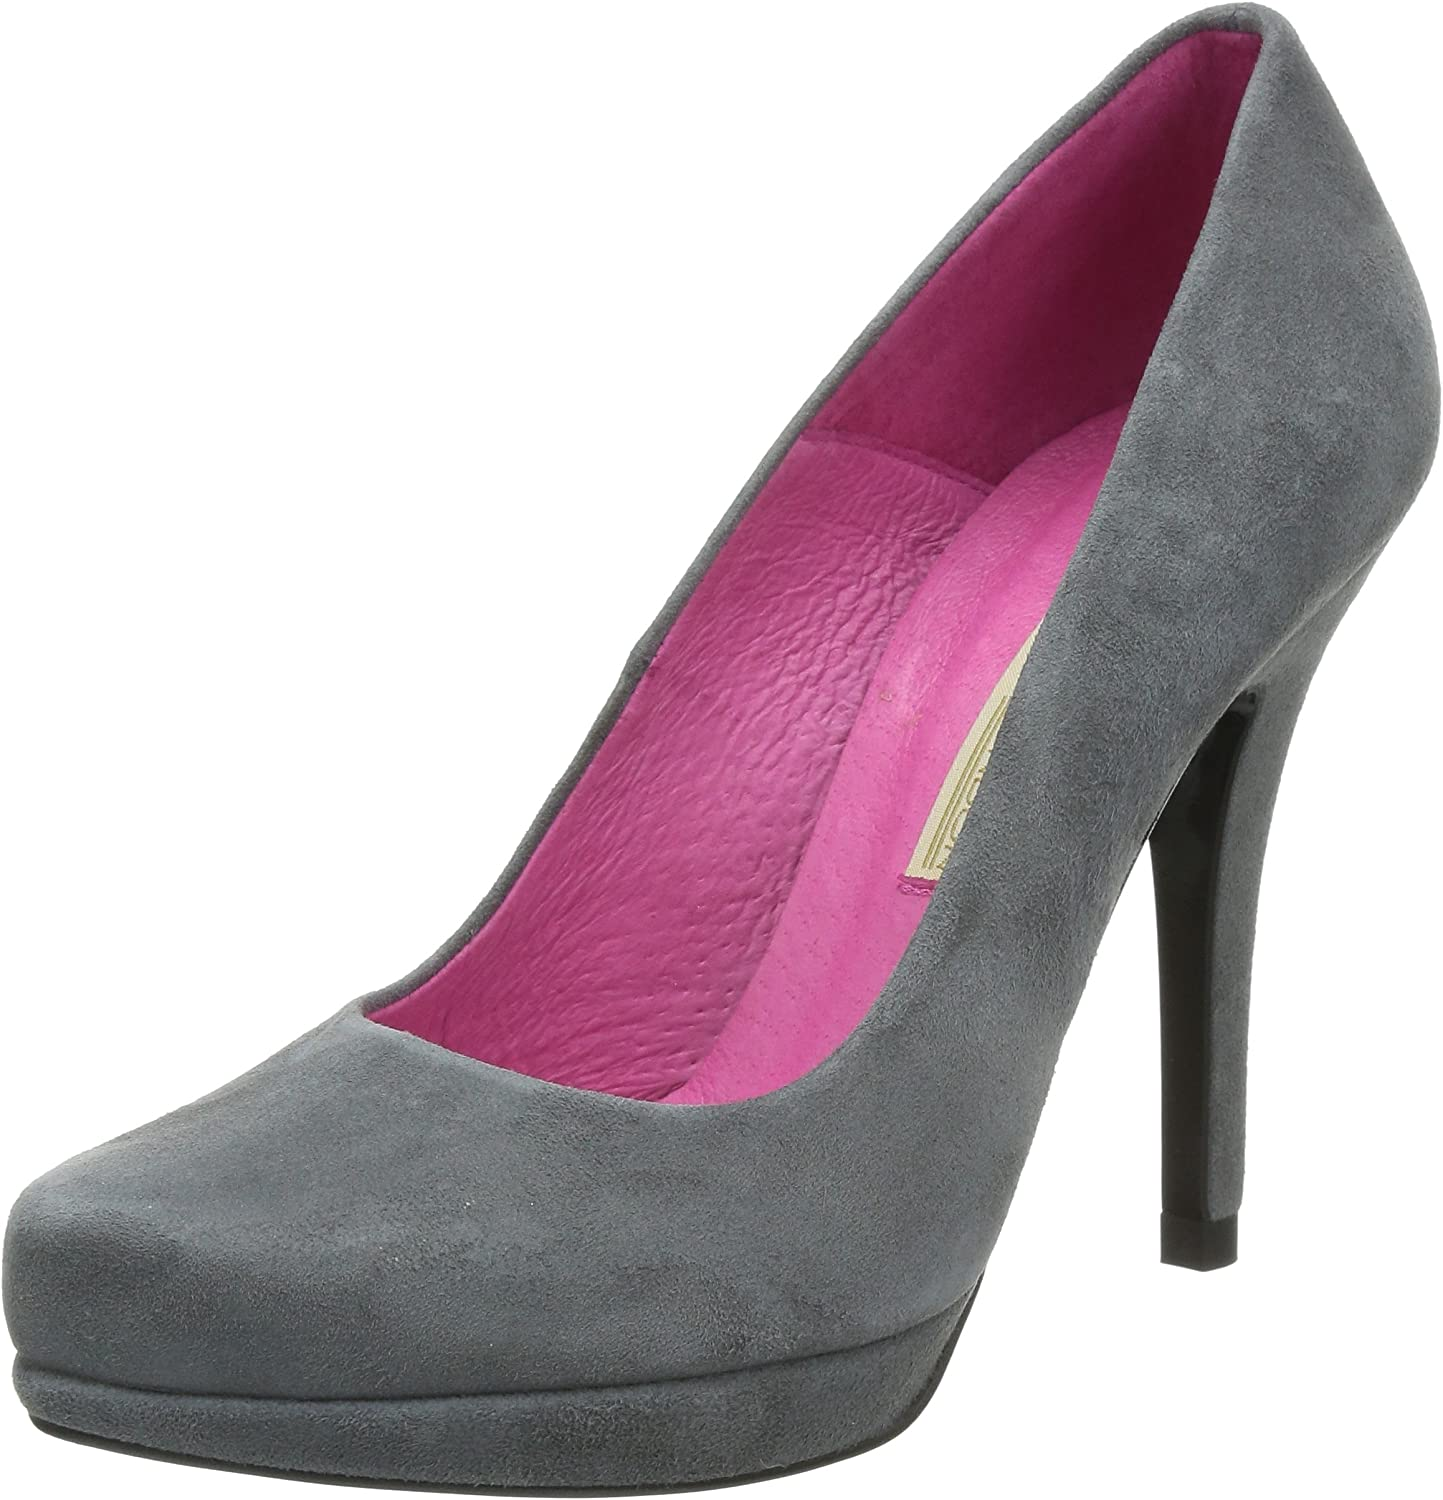 Buffalo London 9669-177 BL SUEDE Damen Plateau Pumps    e8f87a